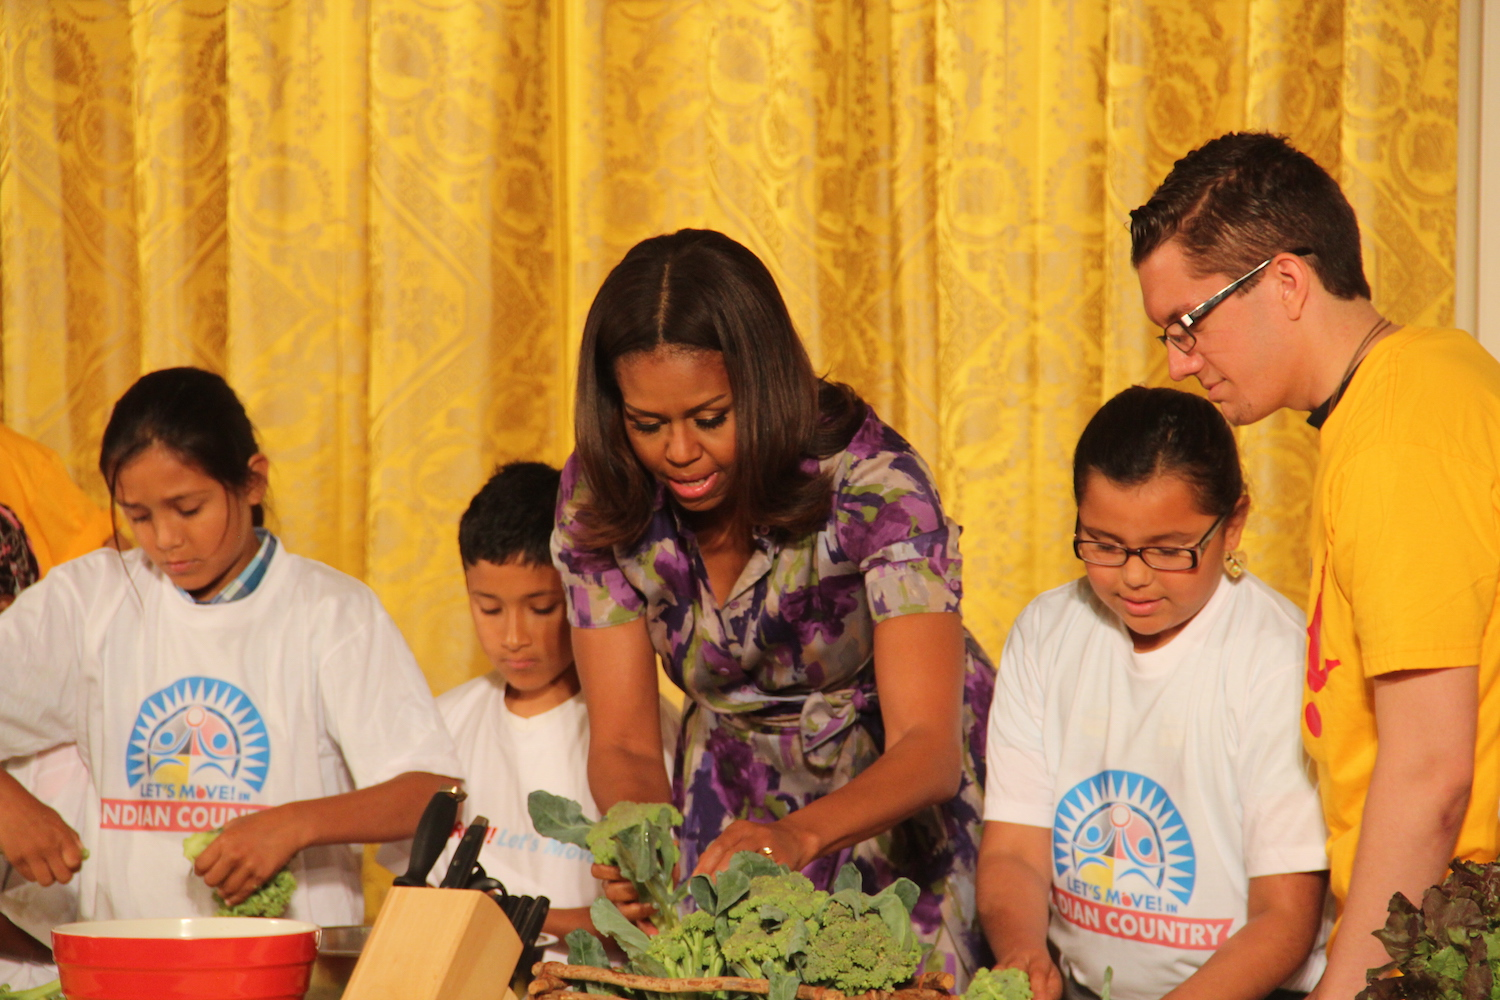 Students from Oglala Sioux Tribe get close with First Lady Obama